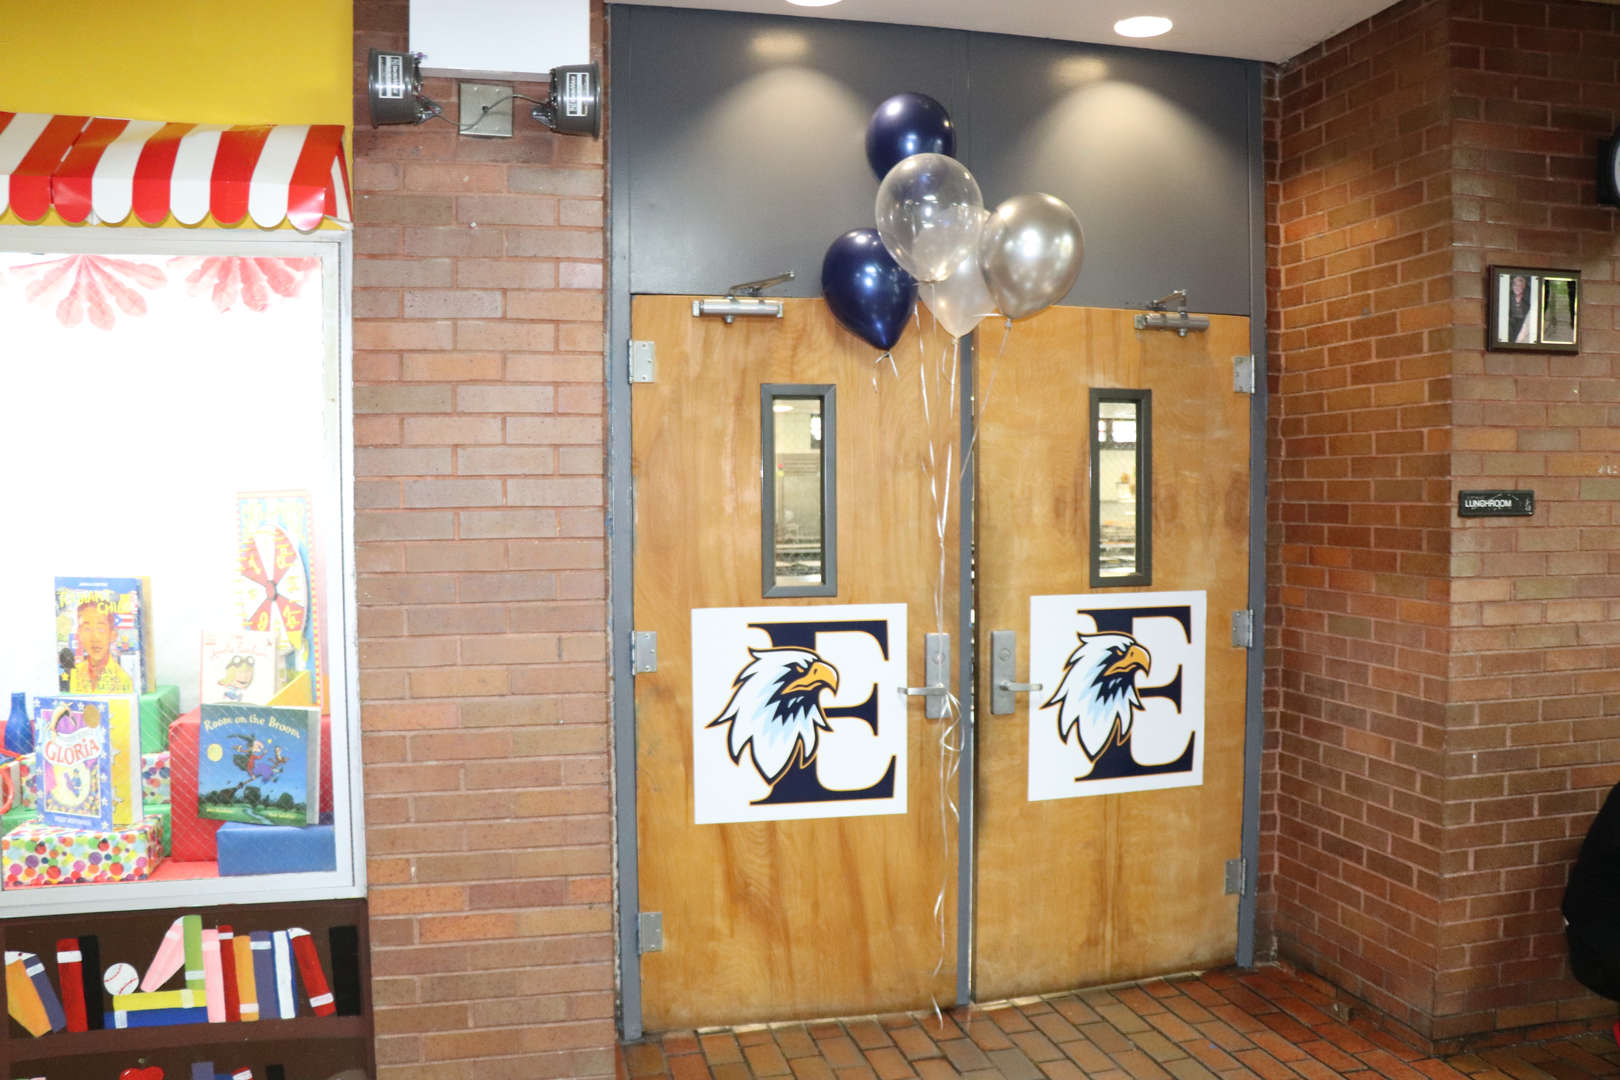 PS 152's logo decorating the outside of the cafeteria doors.